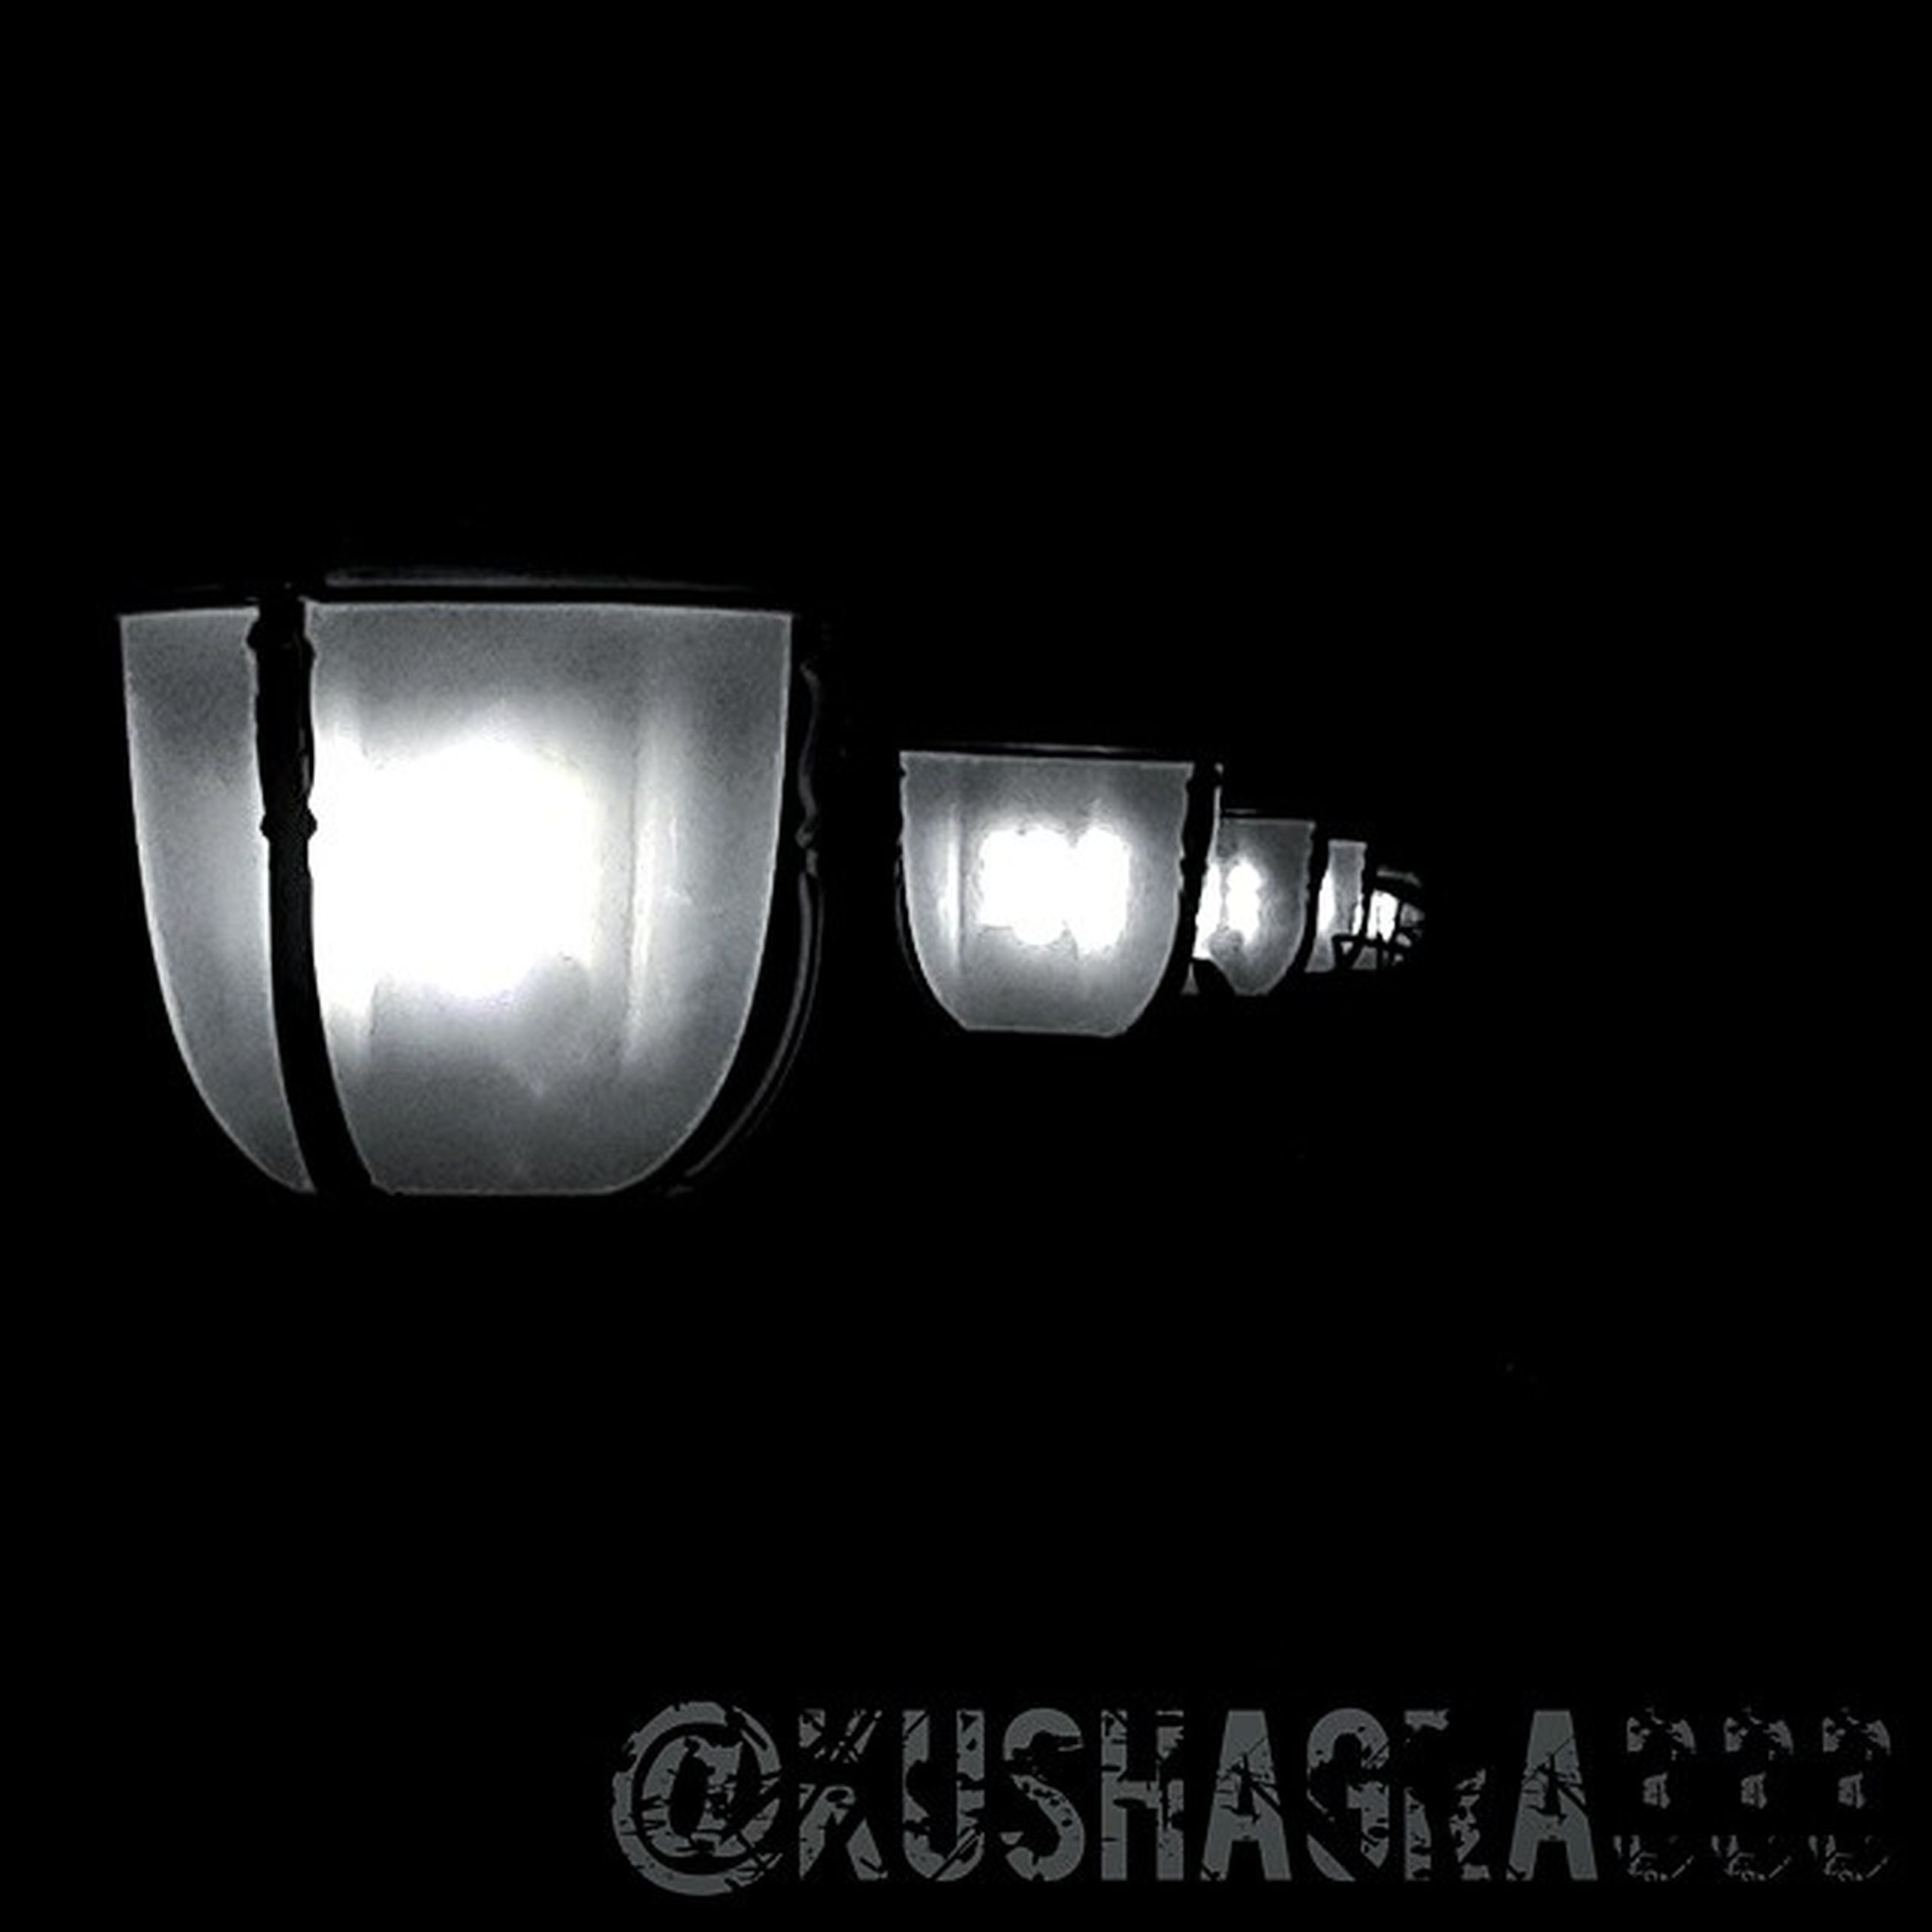 illuminated, copy space, lighting equipment, night, electricity, glowing, dark, low angle view, clear sky, electric light, street light, light bulb, light - natural phenomenon, indoors, glass - material, close-up, reflection, no people, technology, transportation